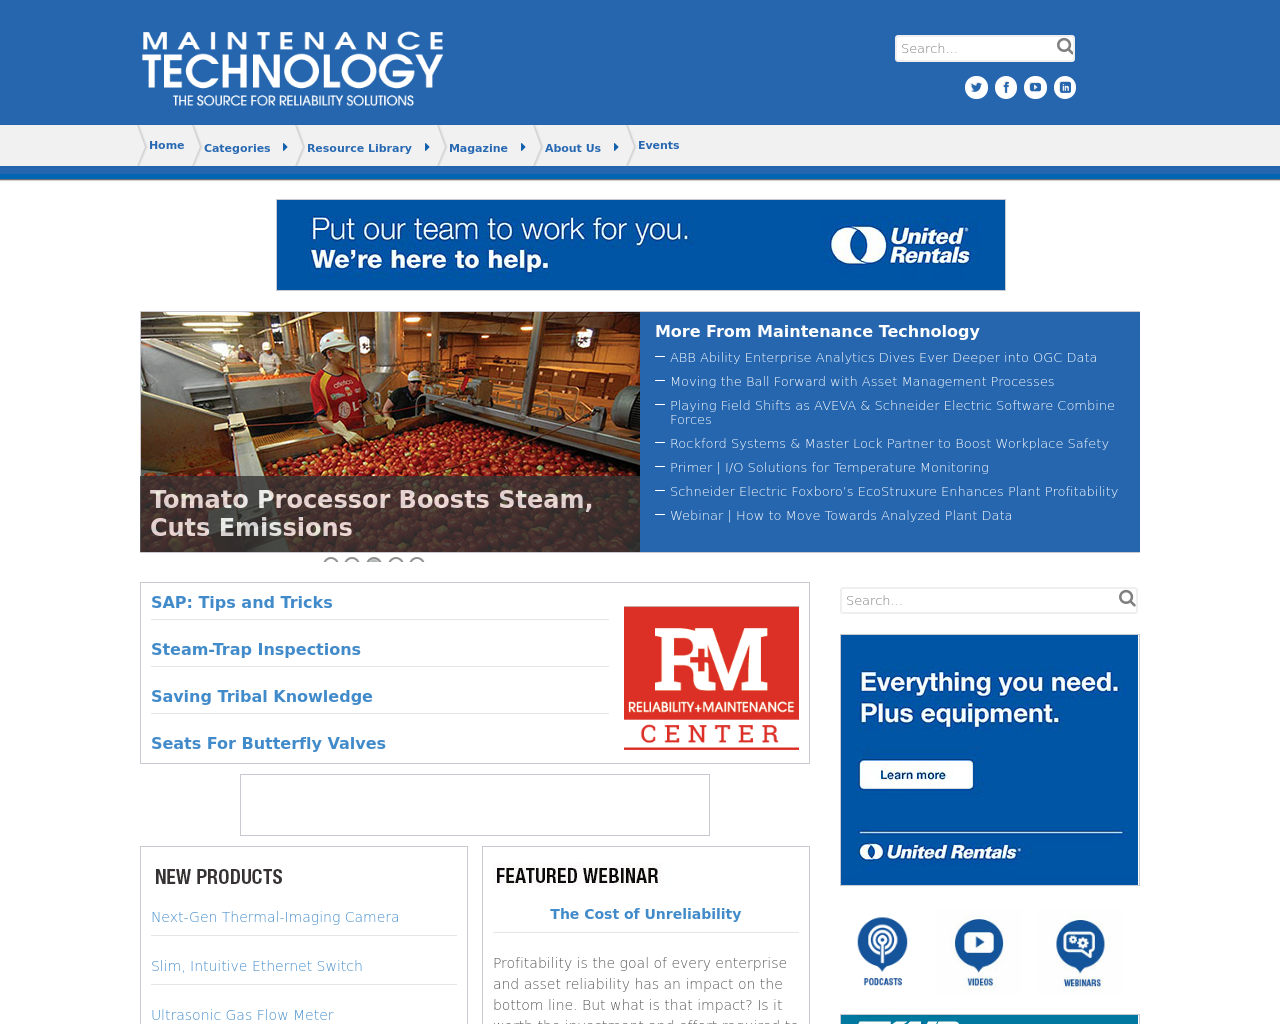 MAINTENANCE-TECHNOLOGY-The-Source-For-Reliability-Solutions-Advertising-Reviews-Pricing